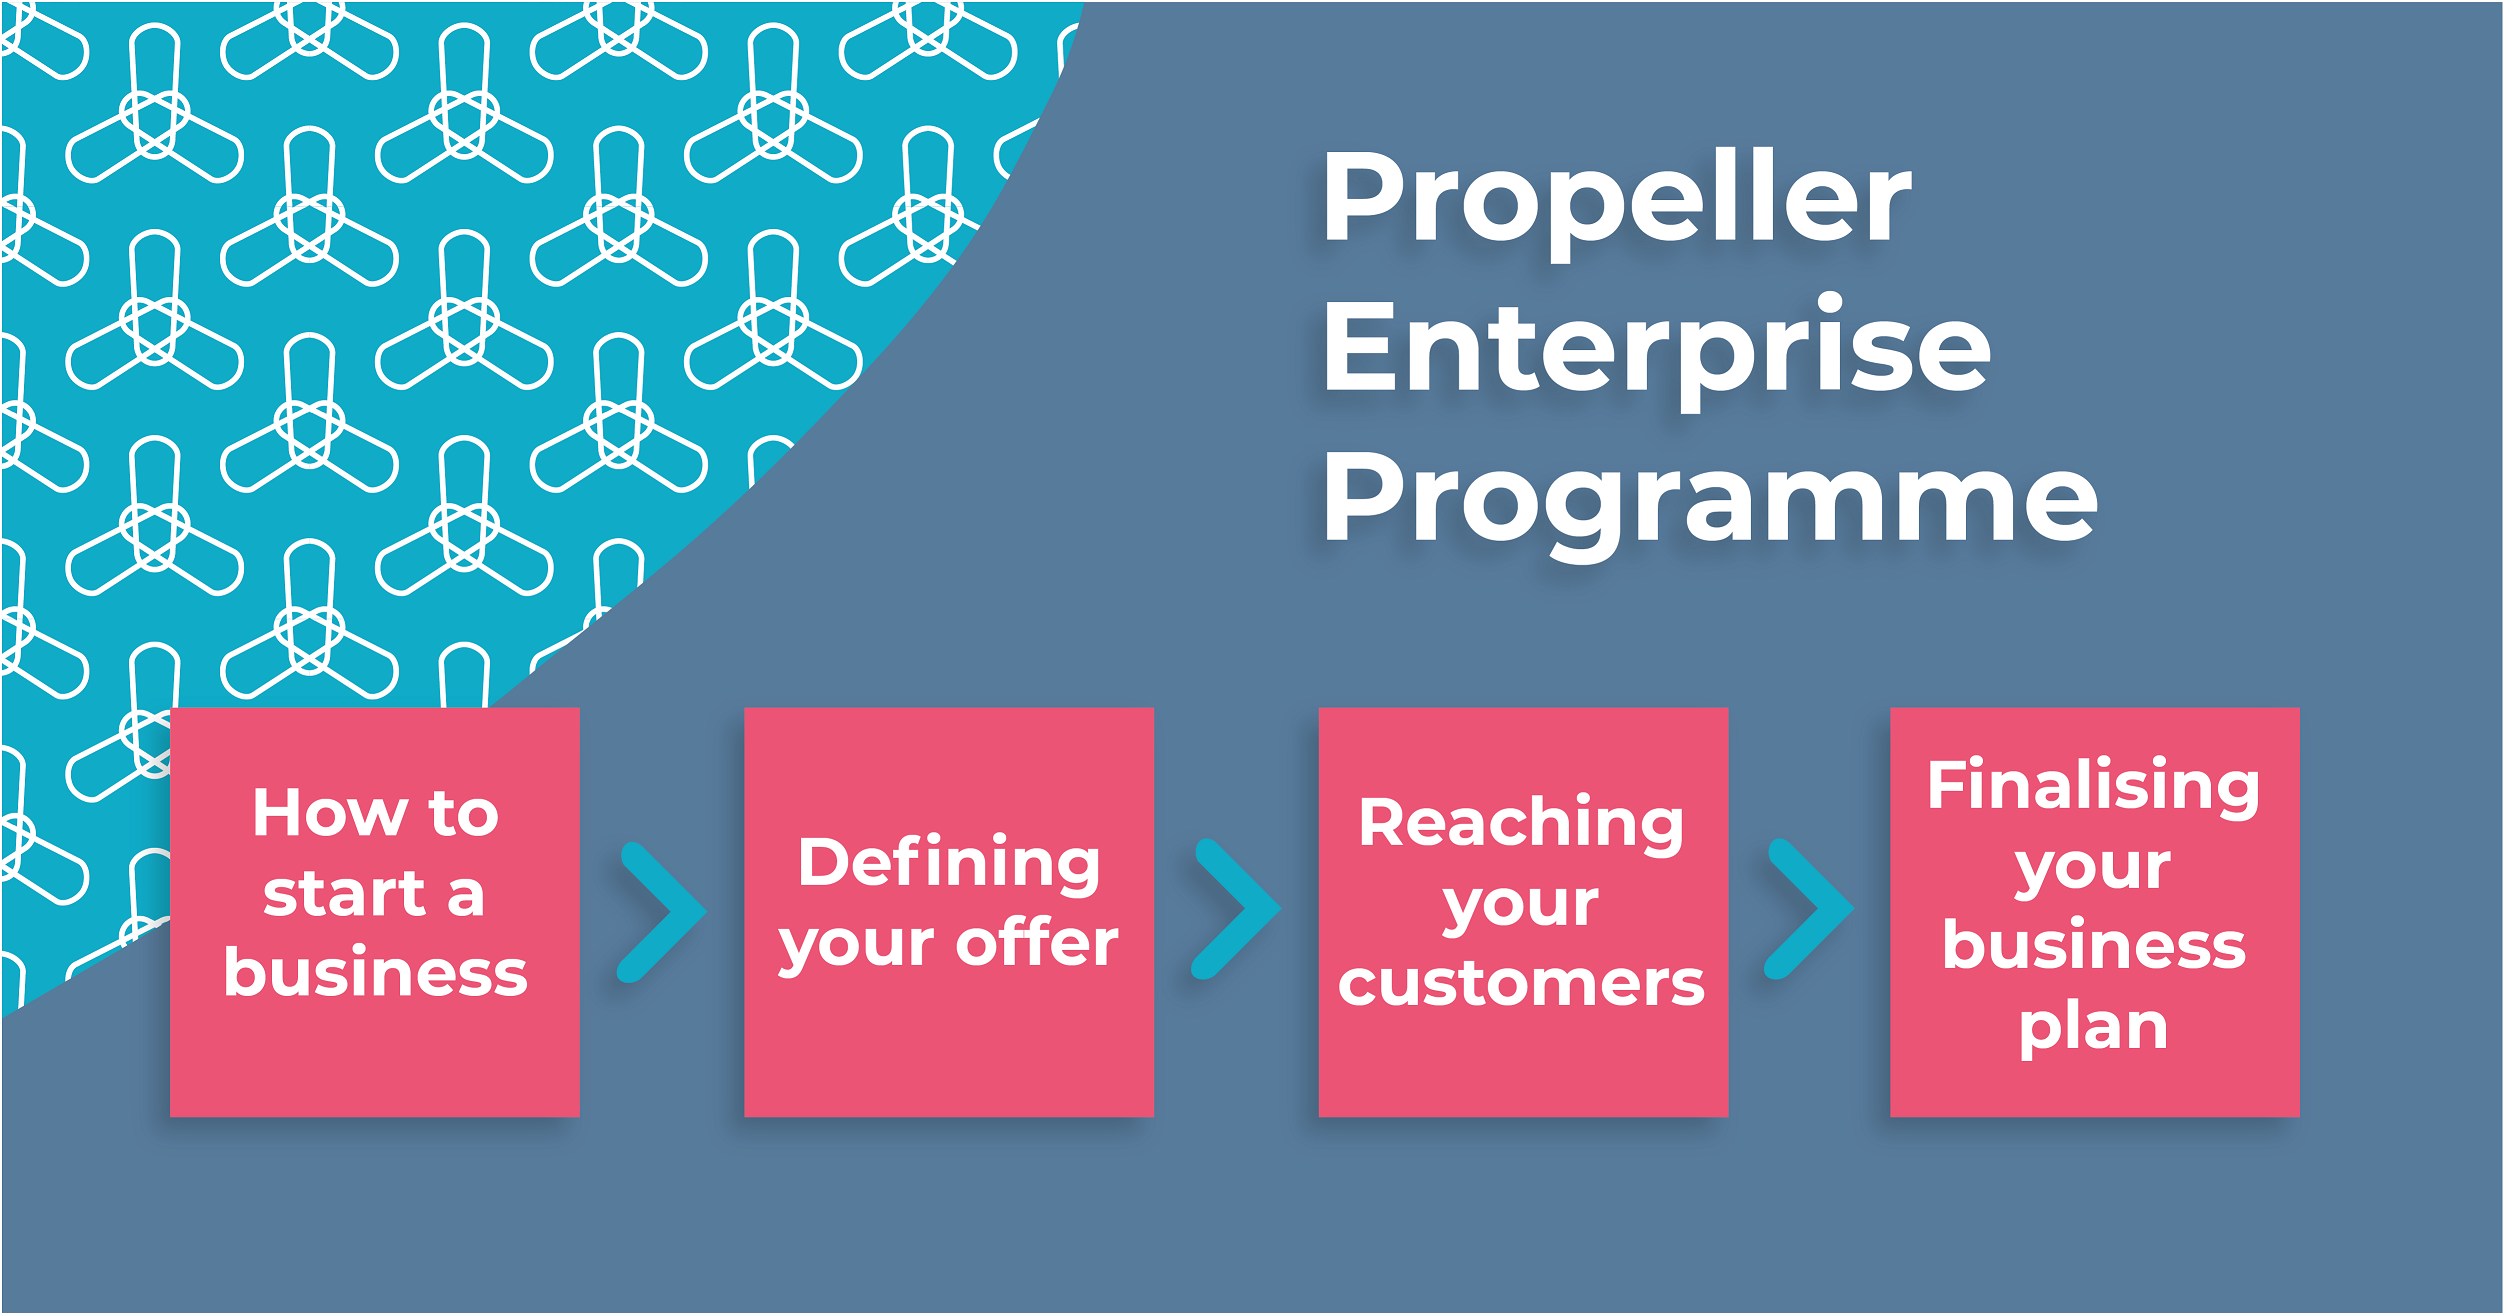 Propeller Enterprise Programme